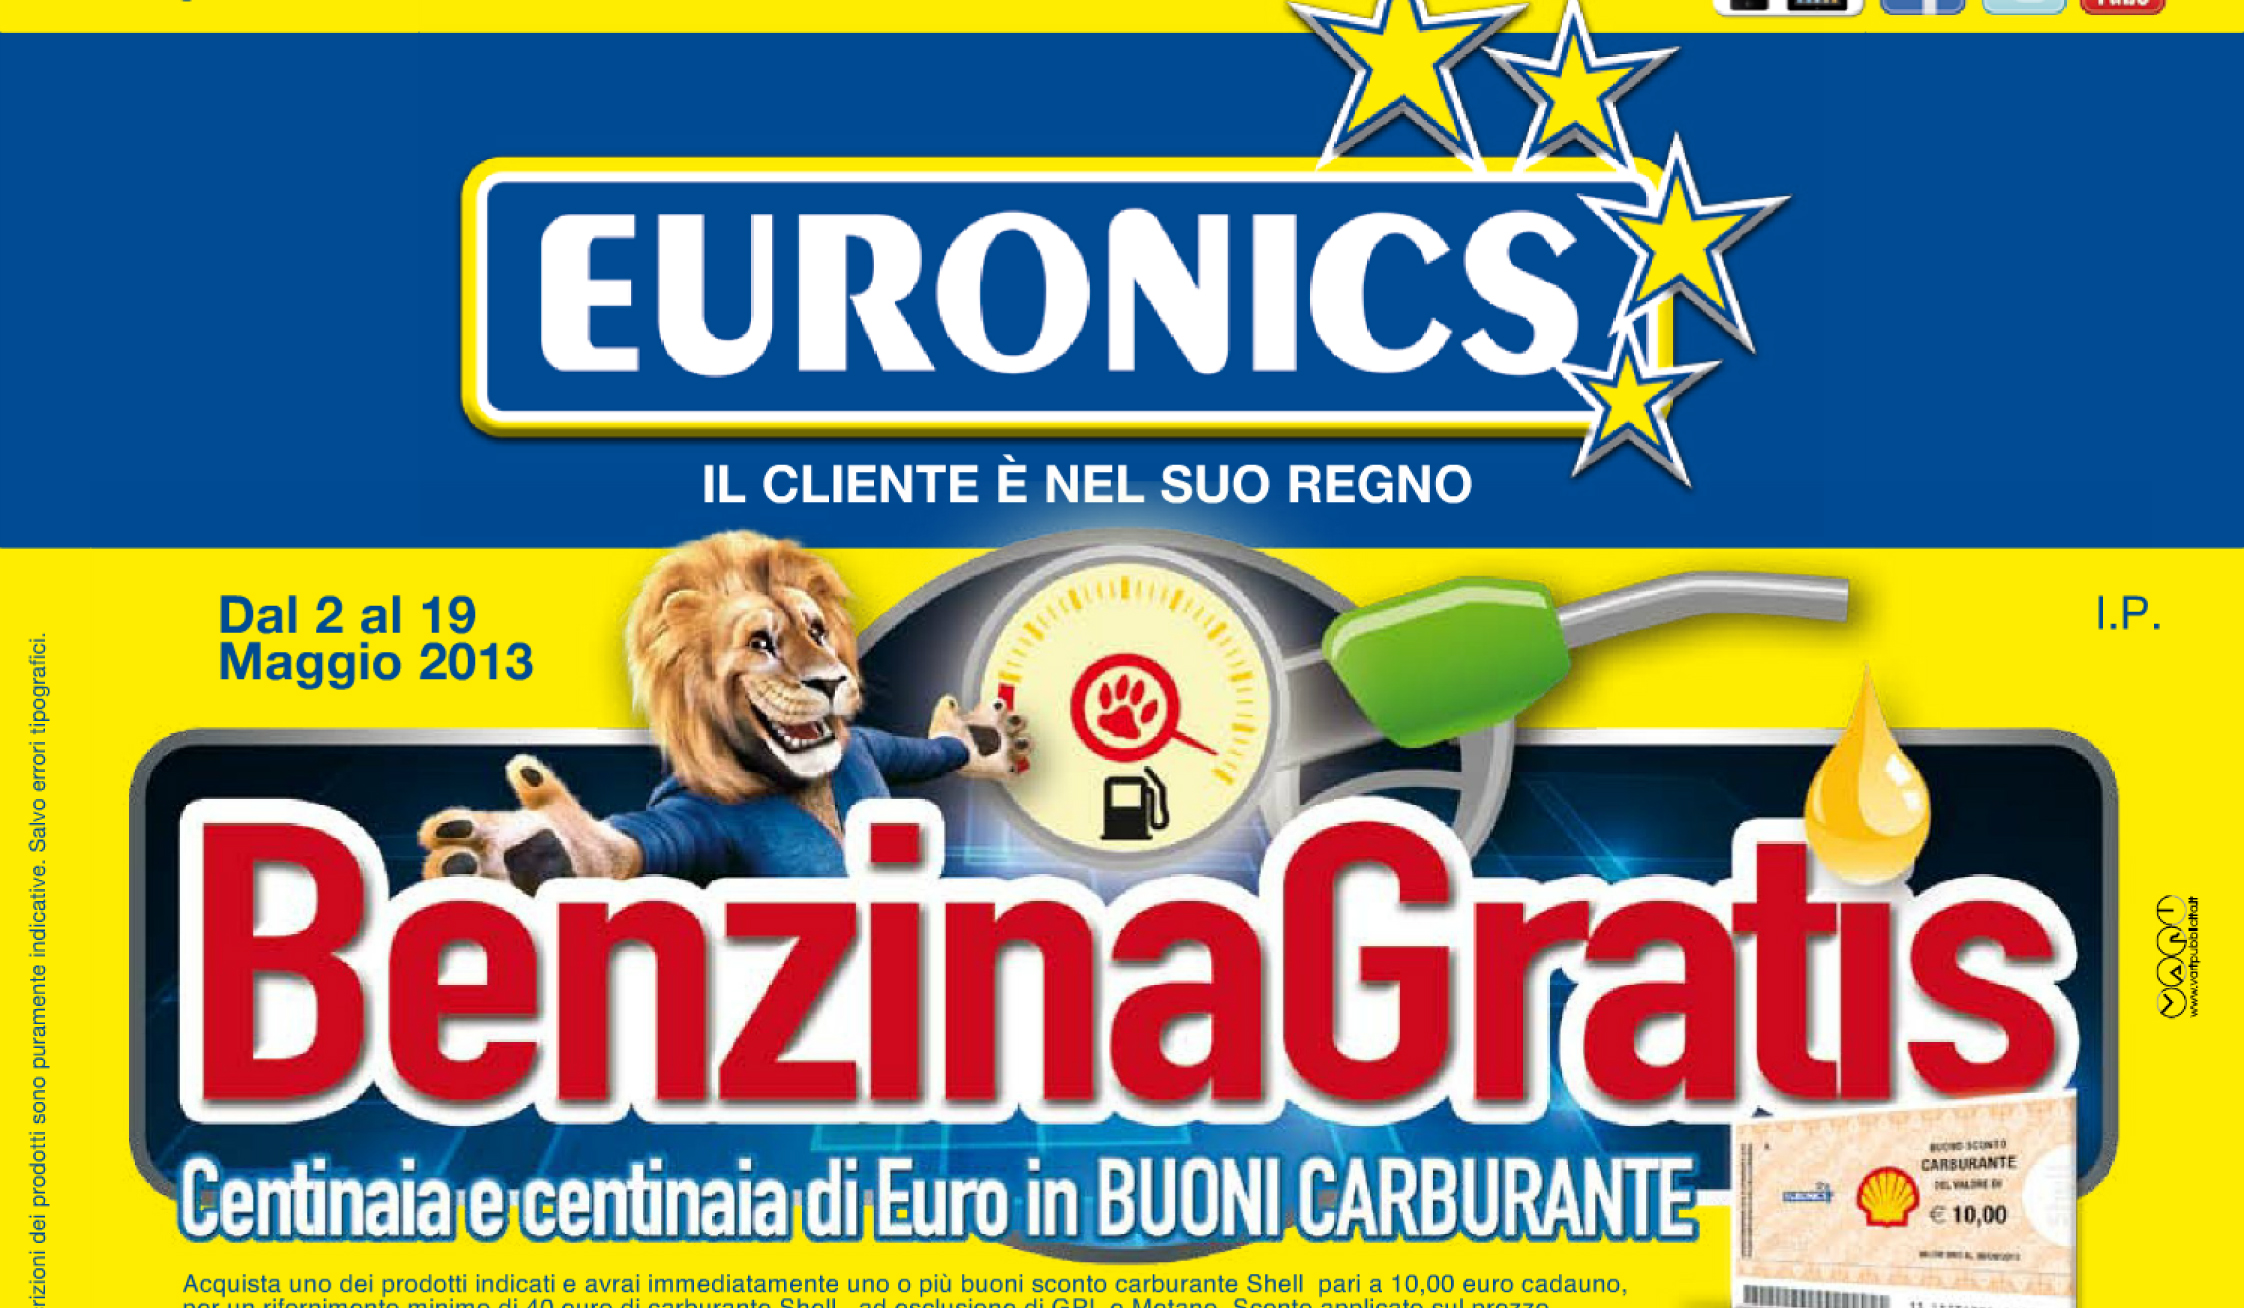 Acquisti Intelligenti| Con Euronics hai la benzina Gratis!